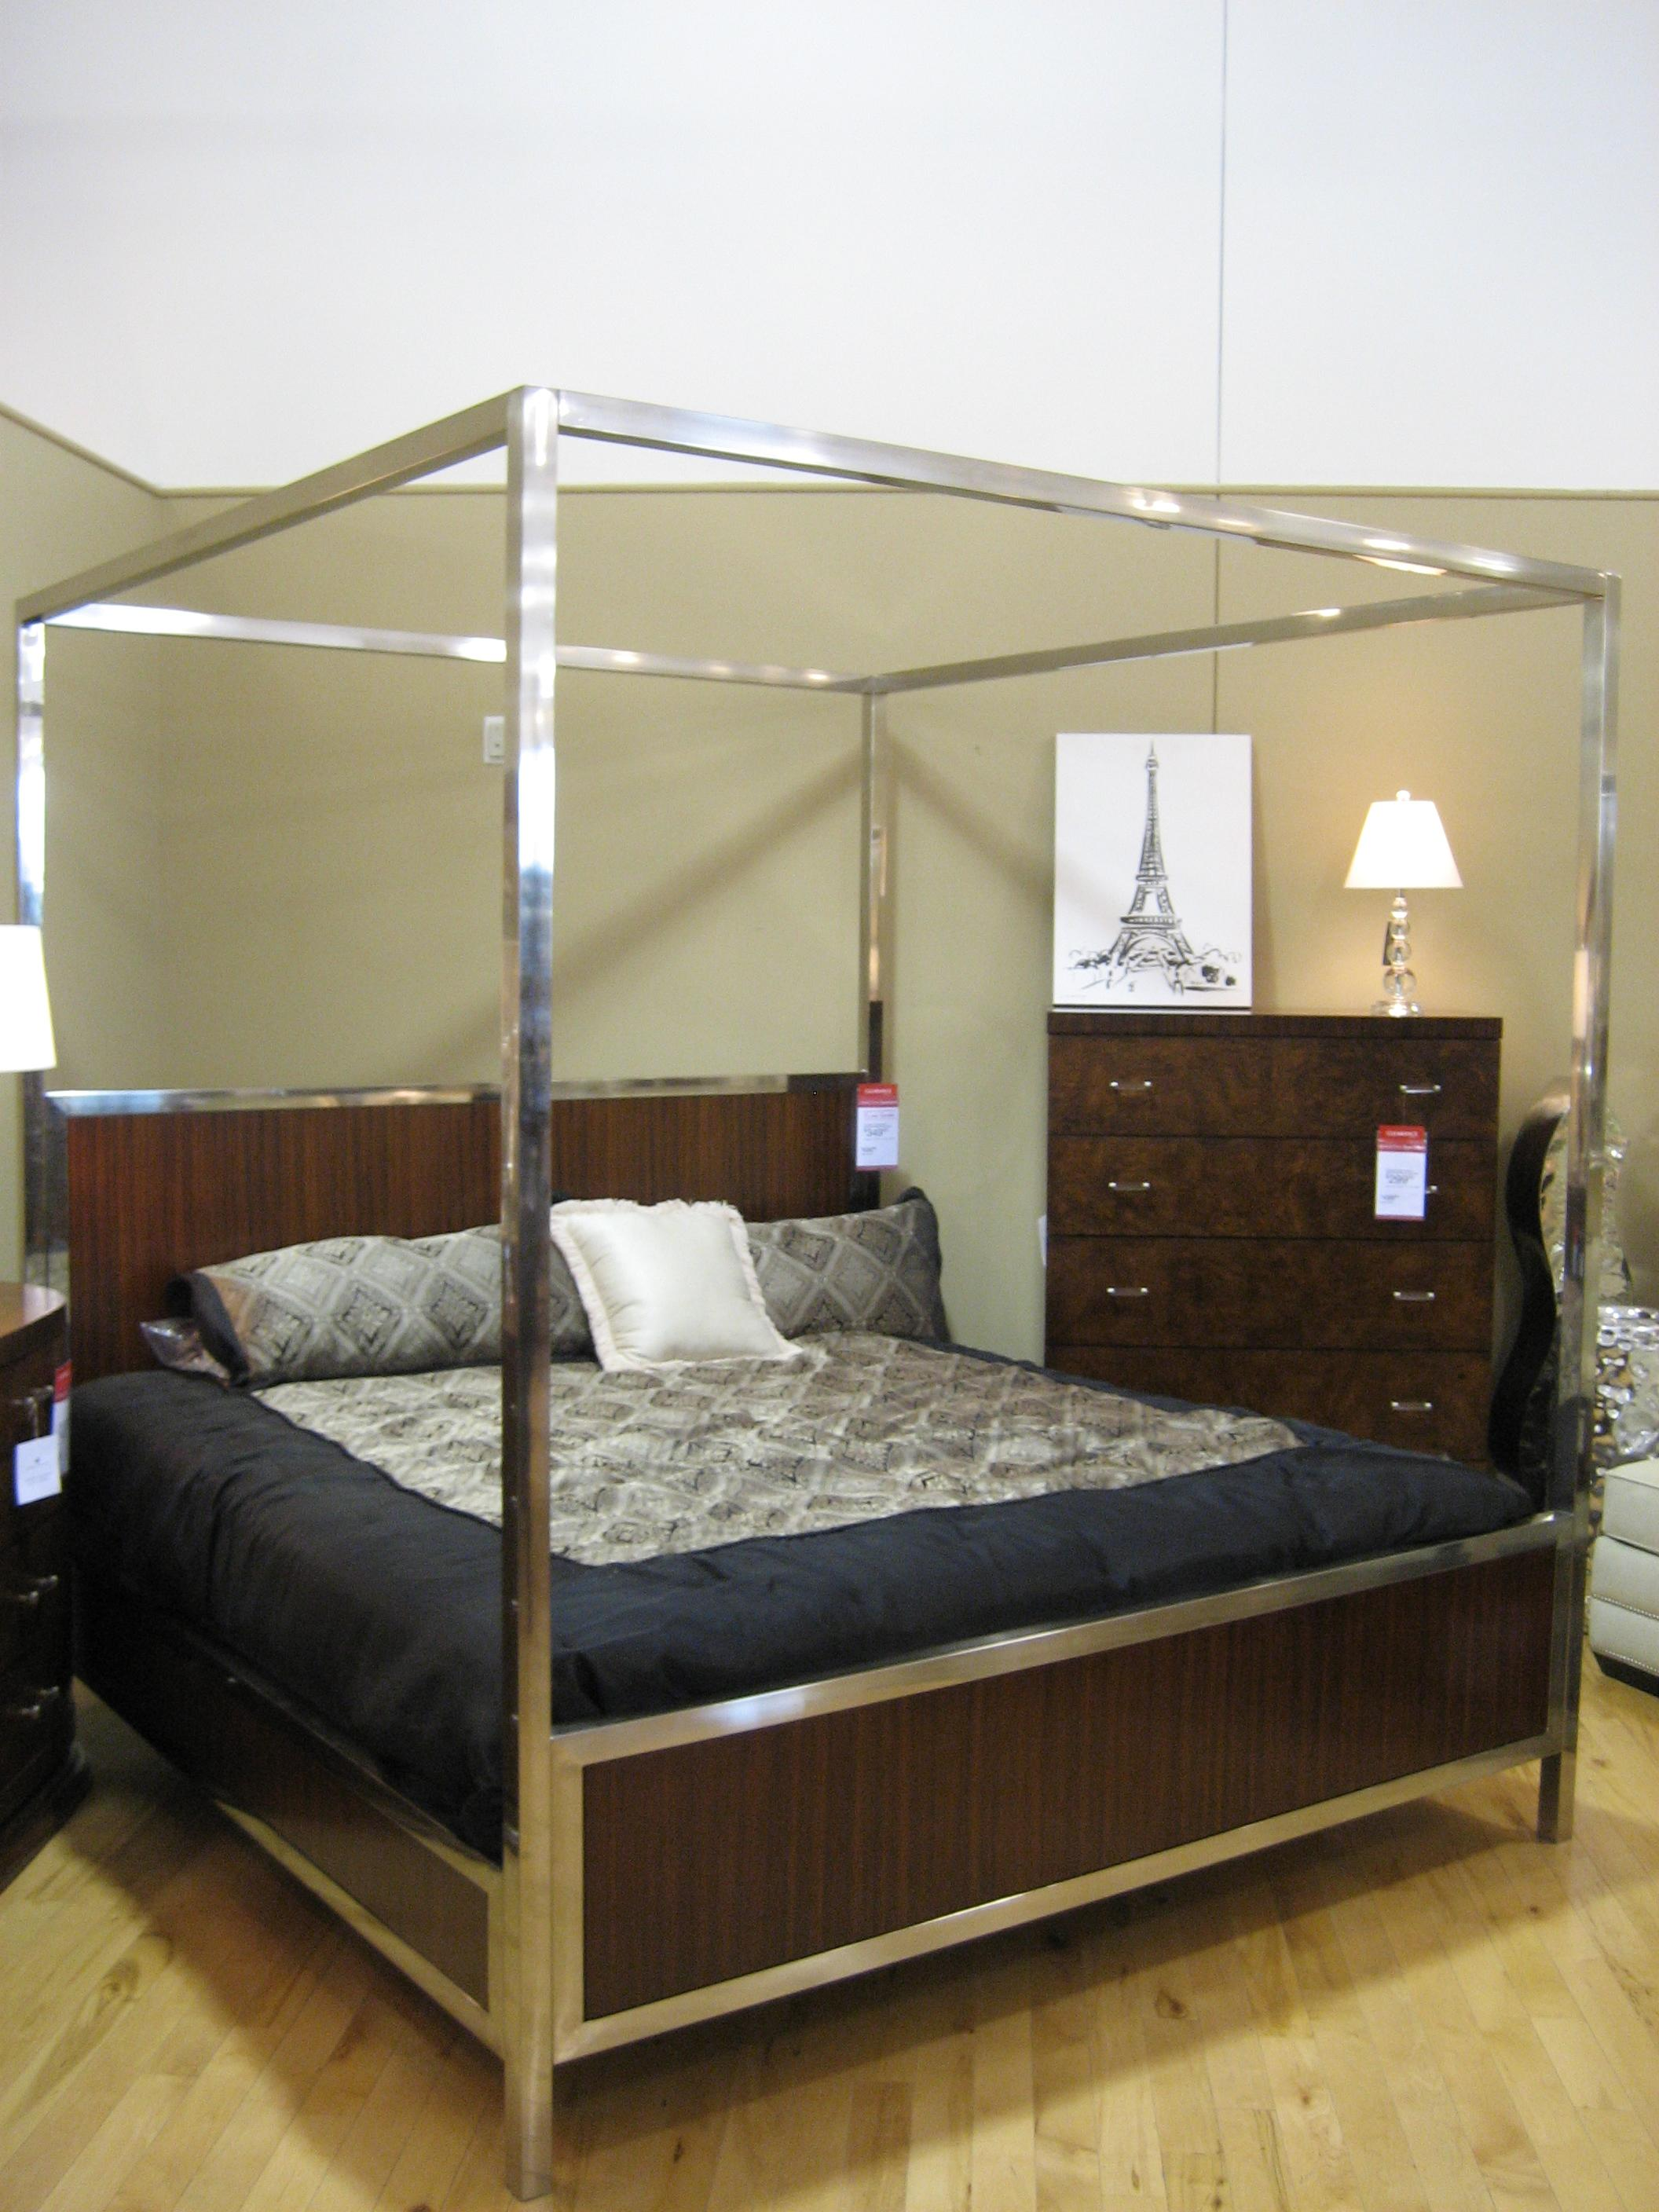 Bed_1_(2283680979)